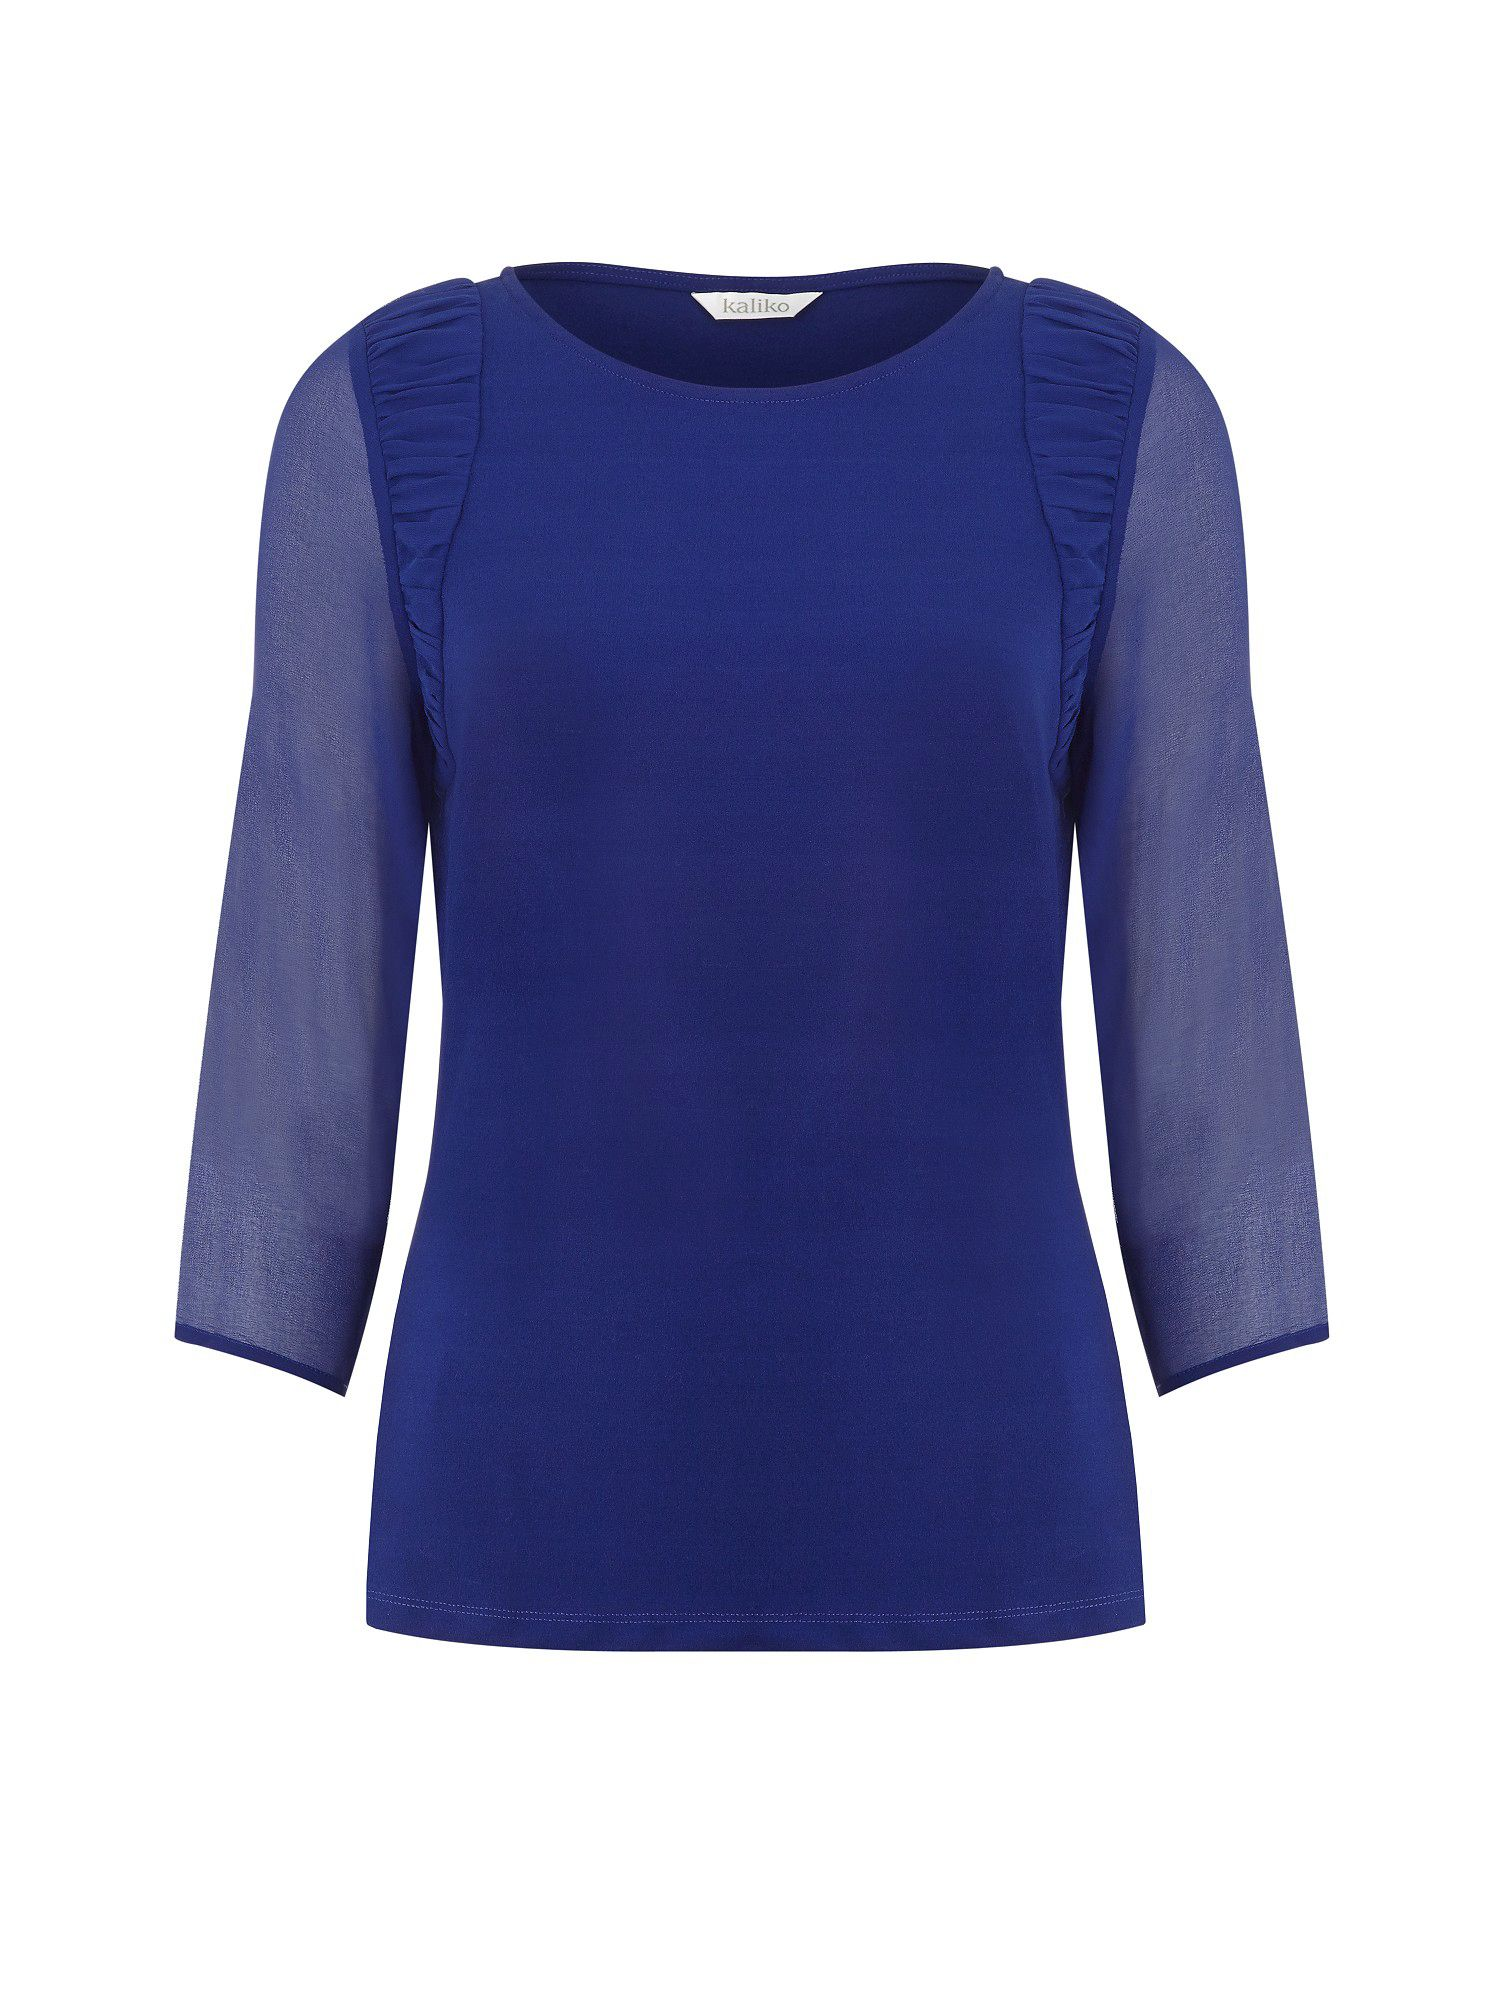 Cobalt Ruched Shoulder Top